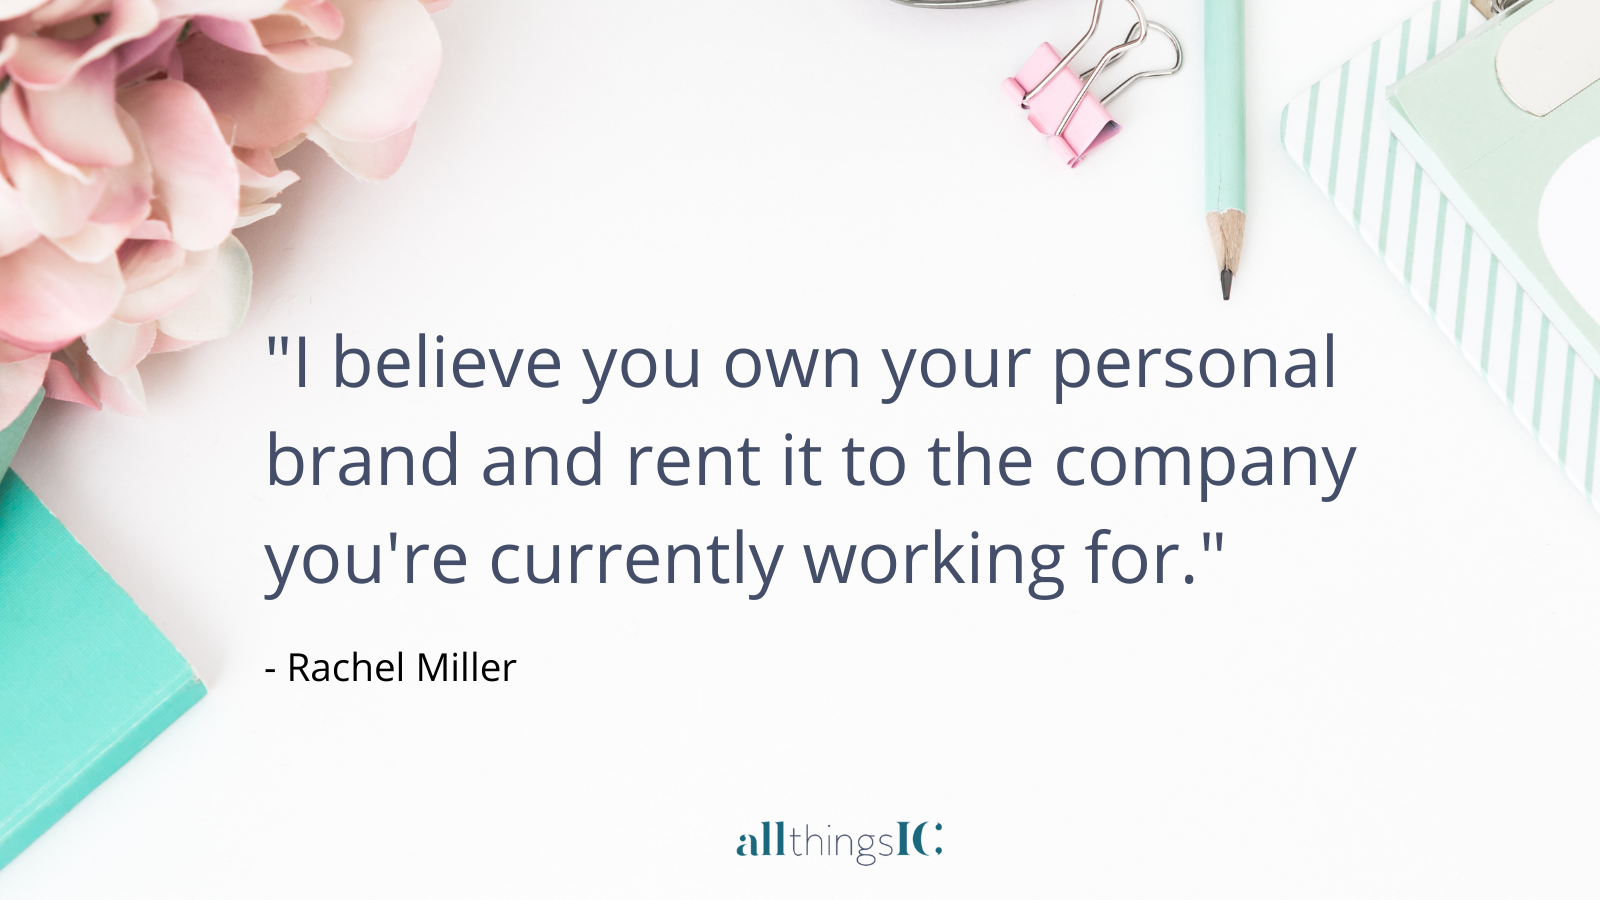 I believe that you own your personal brand and you rent it to the company that you're currently working for.